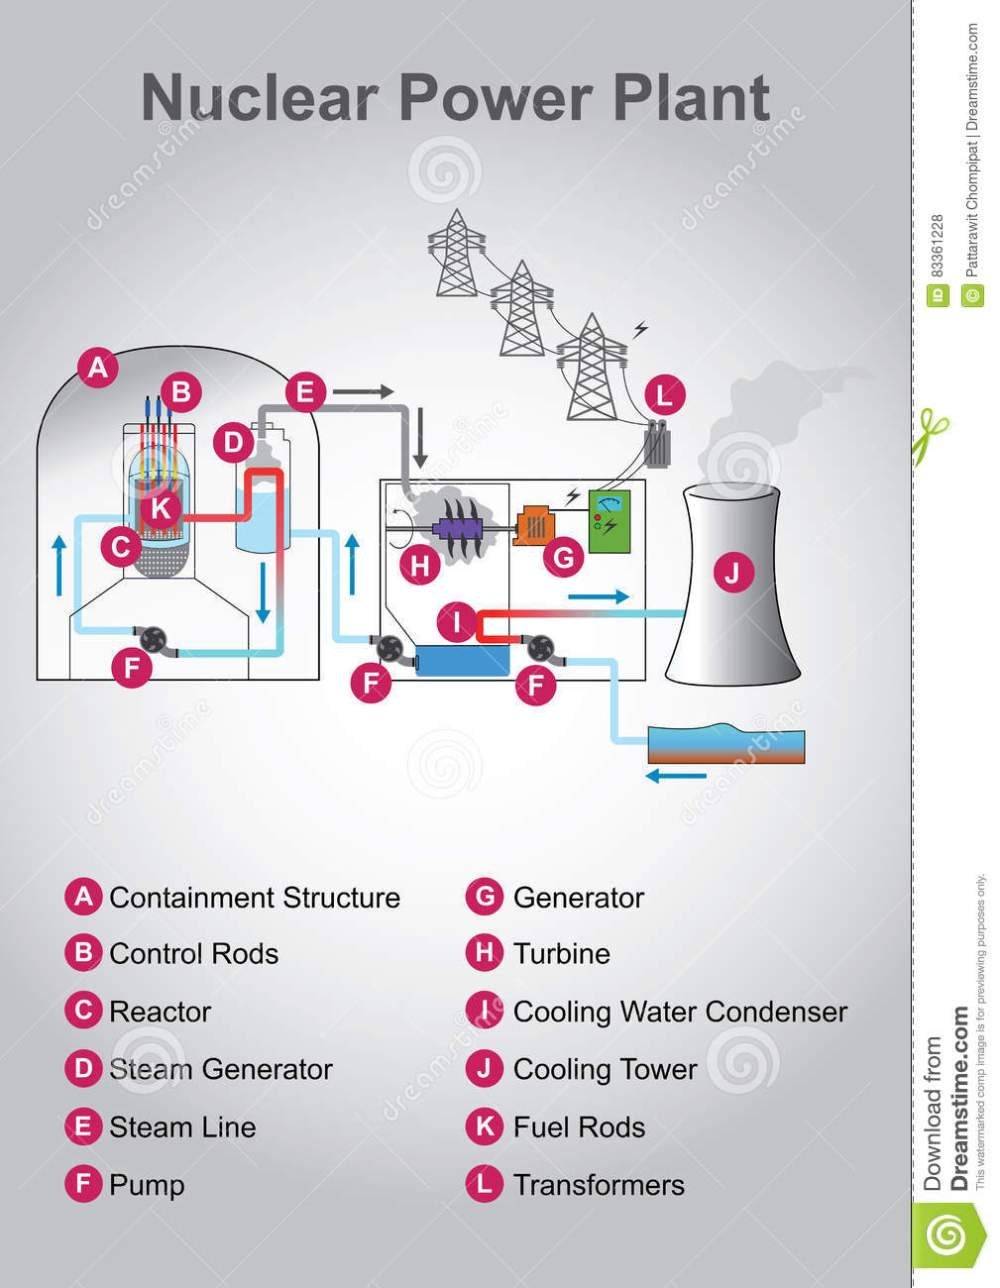 medium resolution of nuclear diagram education infographic vector design